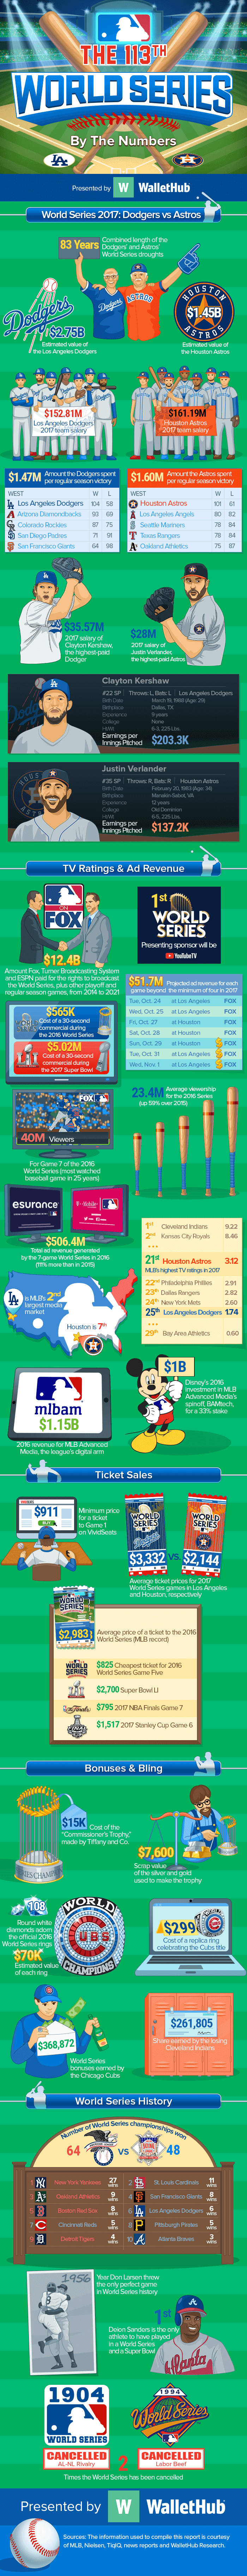 Facts about the 2017 113th World Series